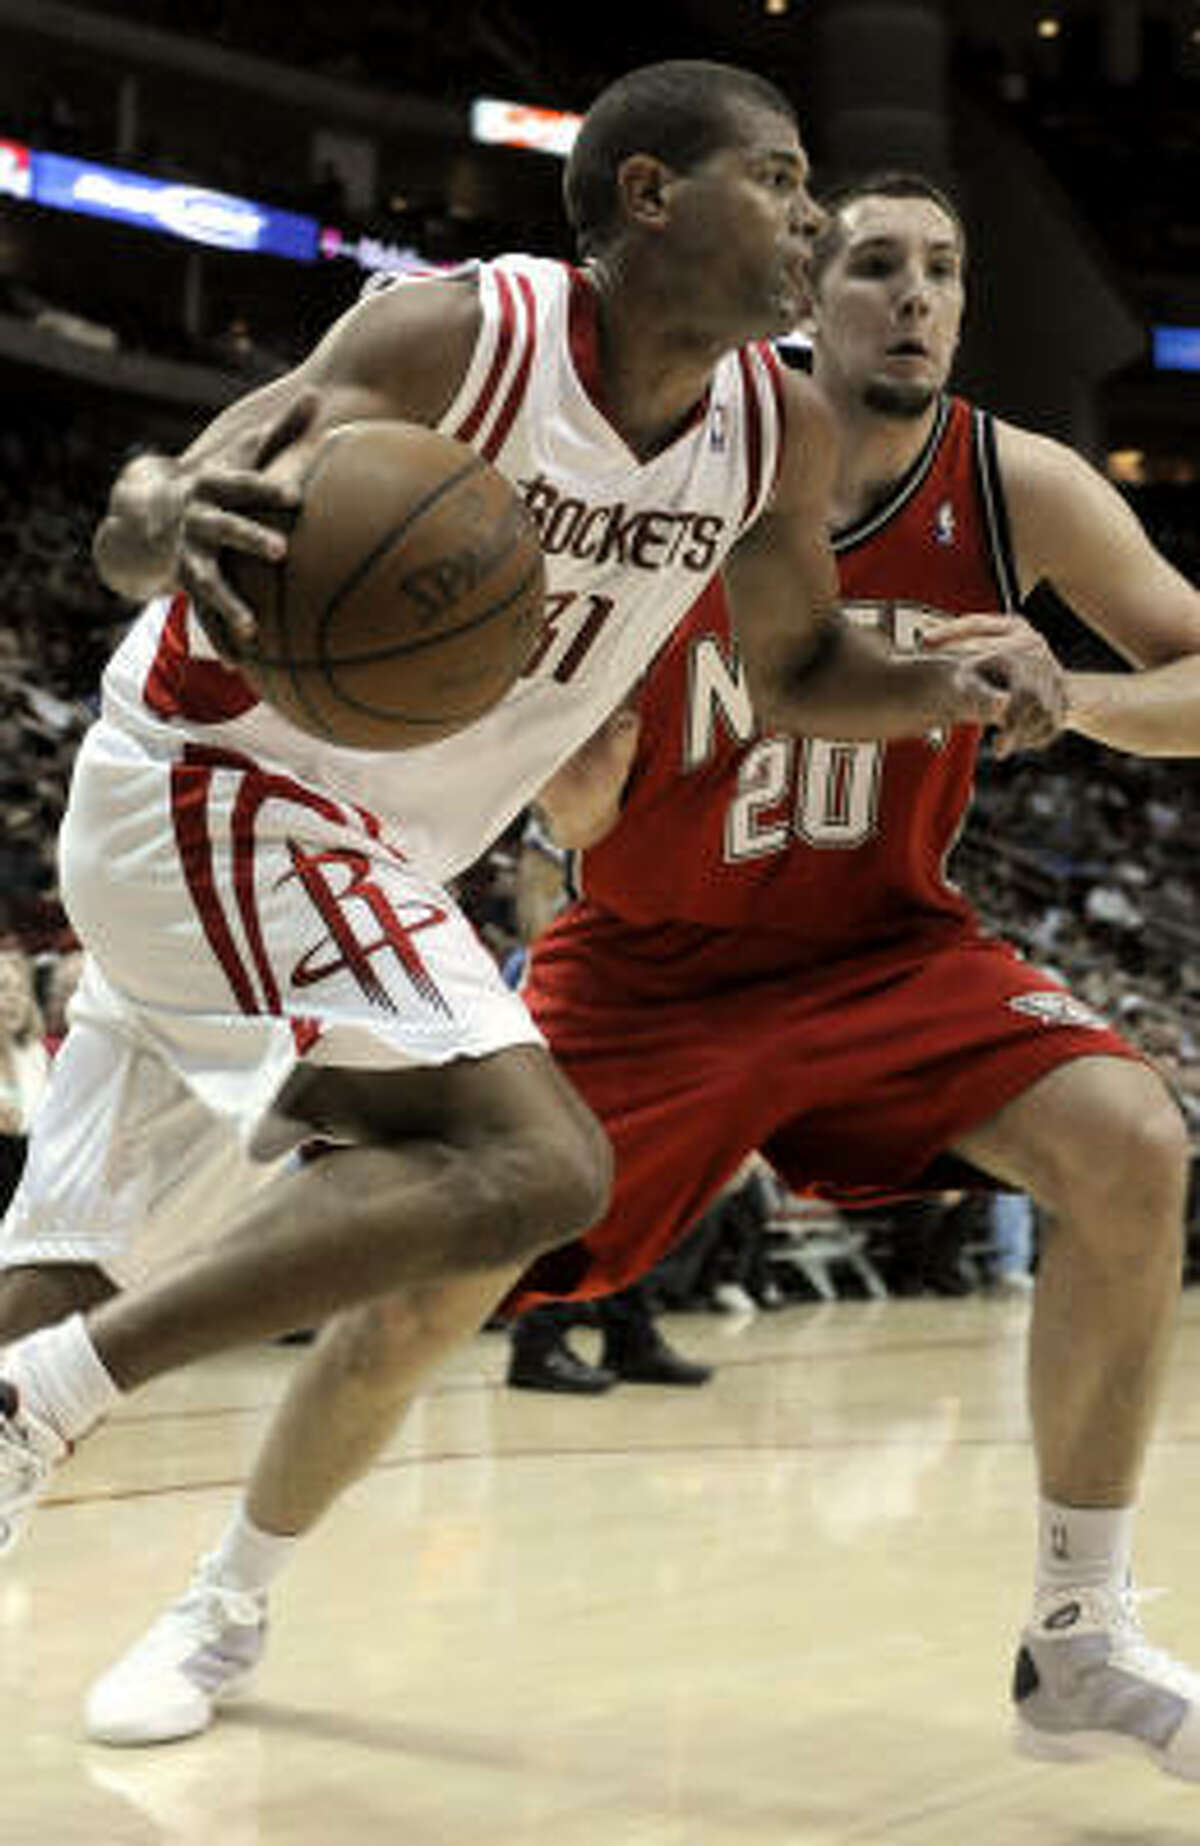 Shane Battier (31) drives against New Jersey's Ryan Anderson (20) during the second half.